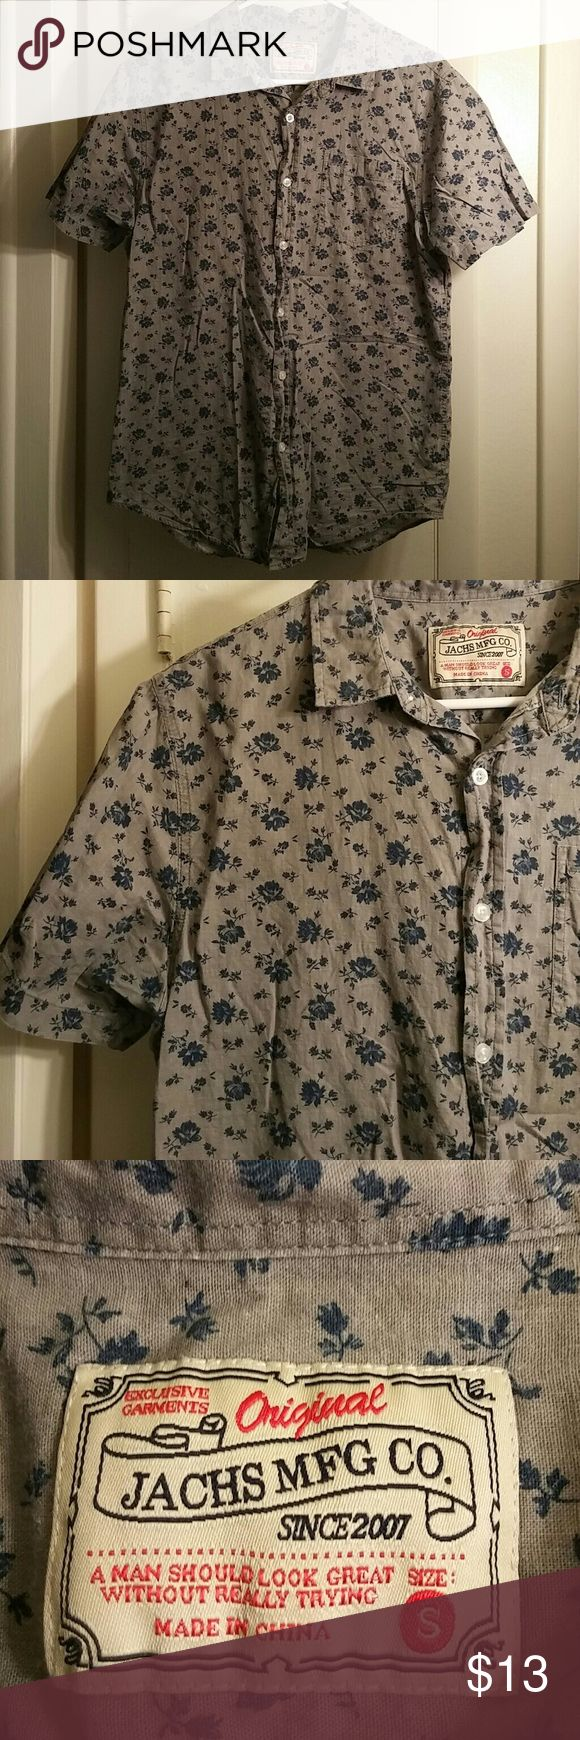 Floral button down shirt Grey with blue floral short sleeve button down shirt. Lightly worn. Men's small. Jachs Mfg Co. Shirts Casual Button Down Shirts